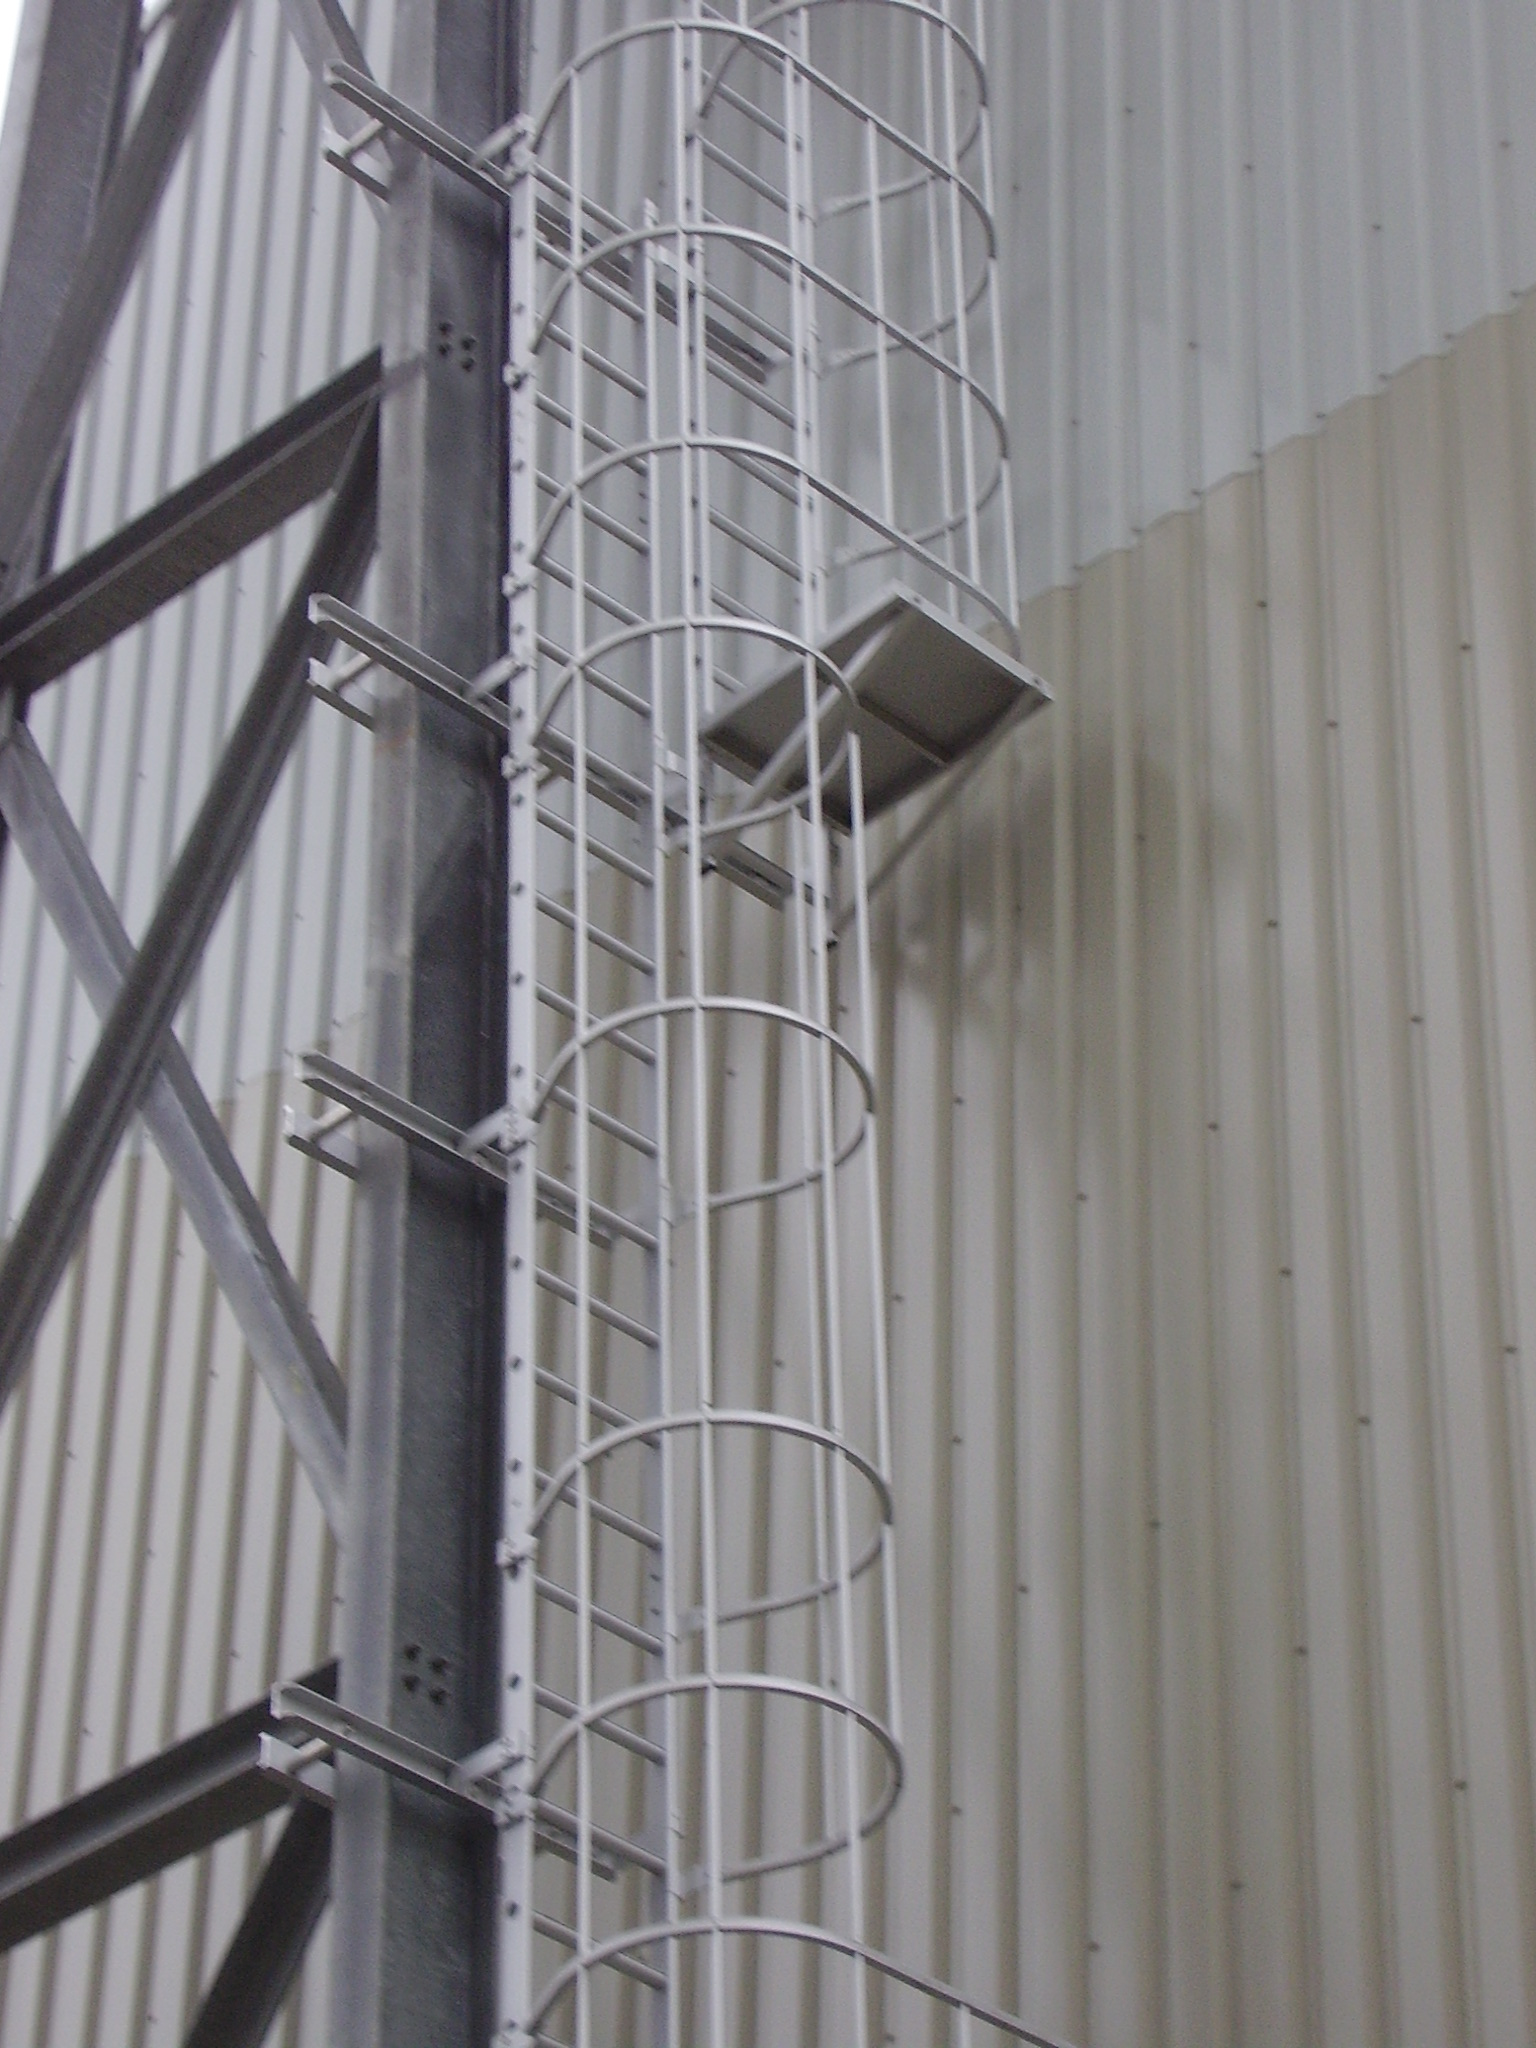 Flight between two cage ladders